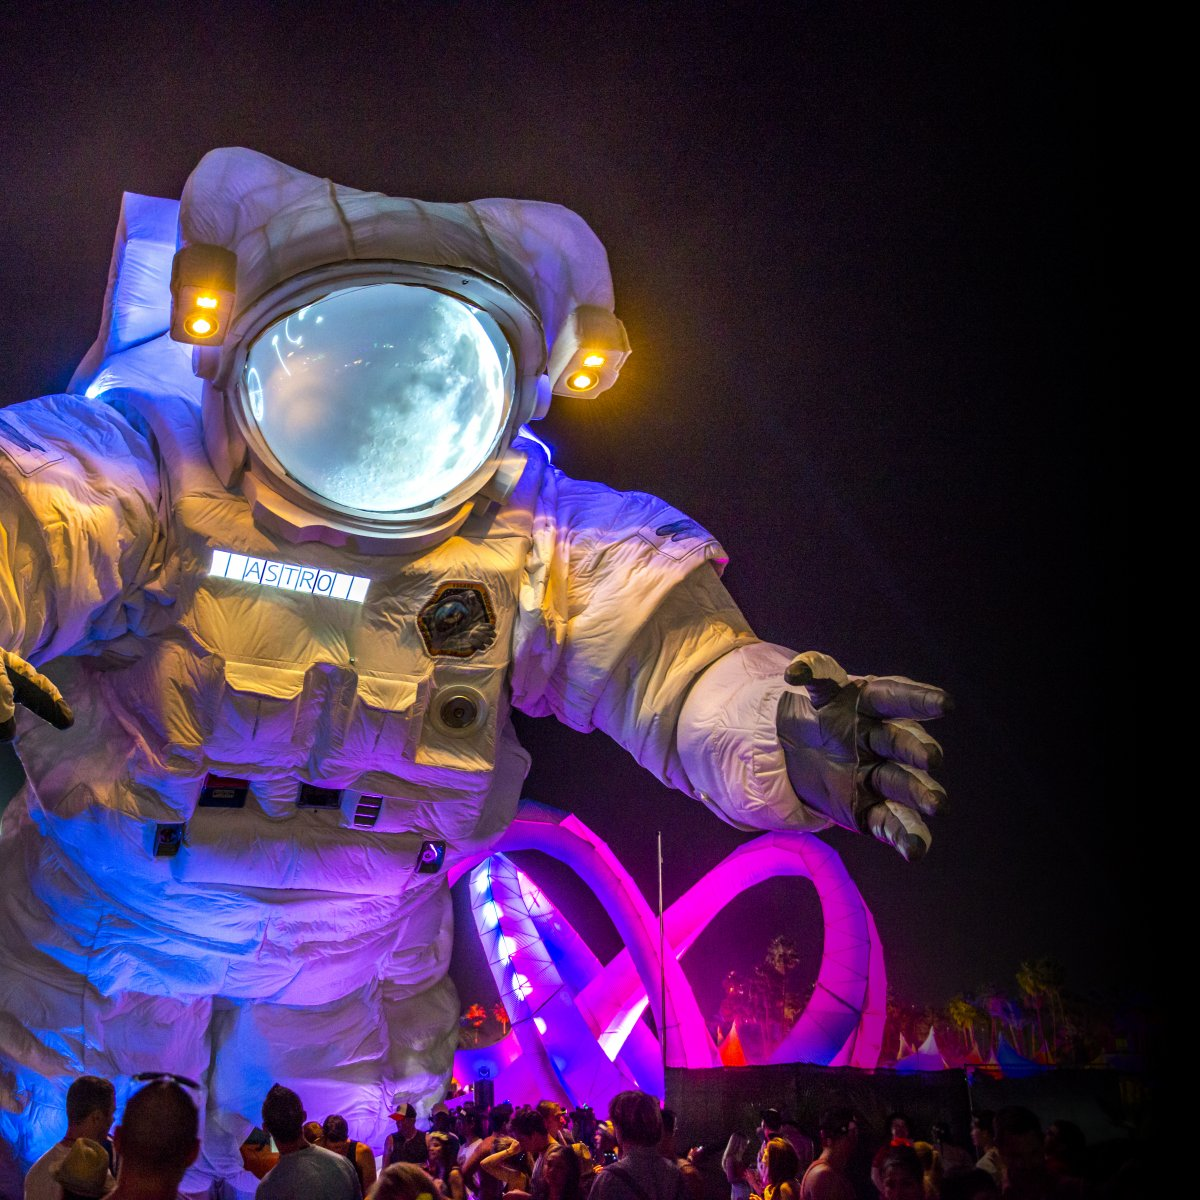 Image of a large astronaut art installation with a ferris wheel in the background during night time